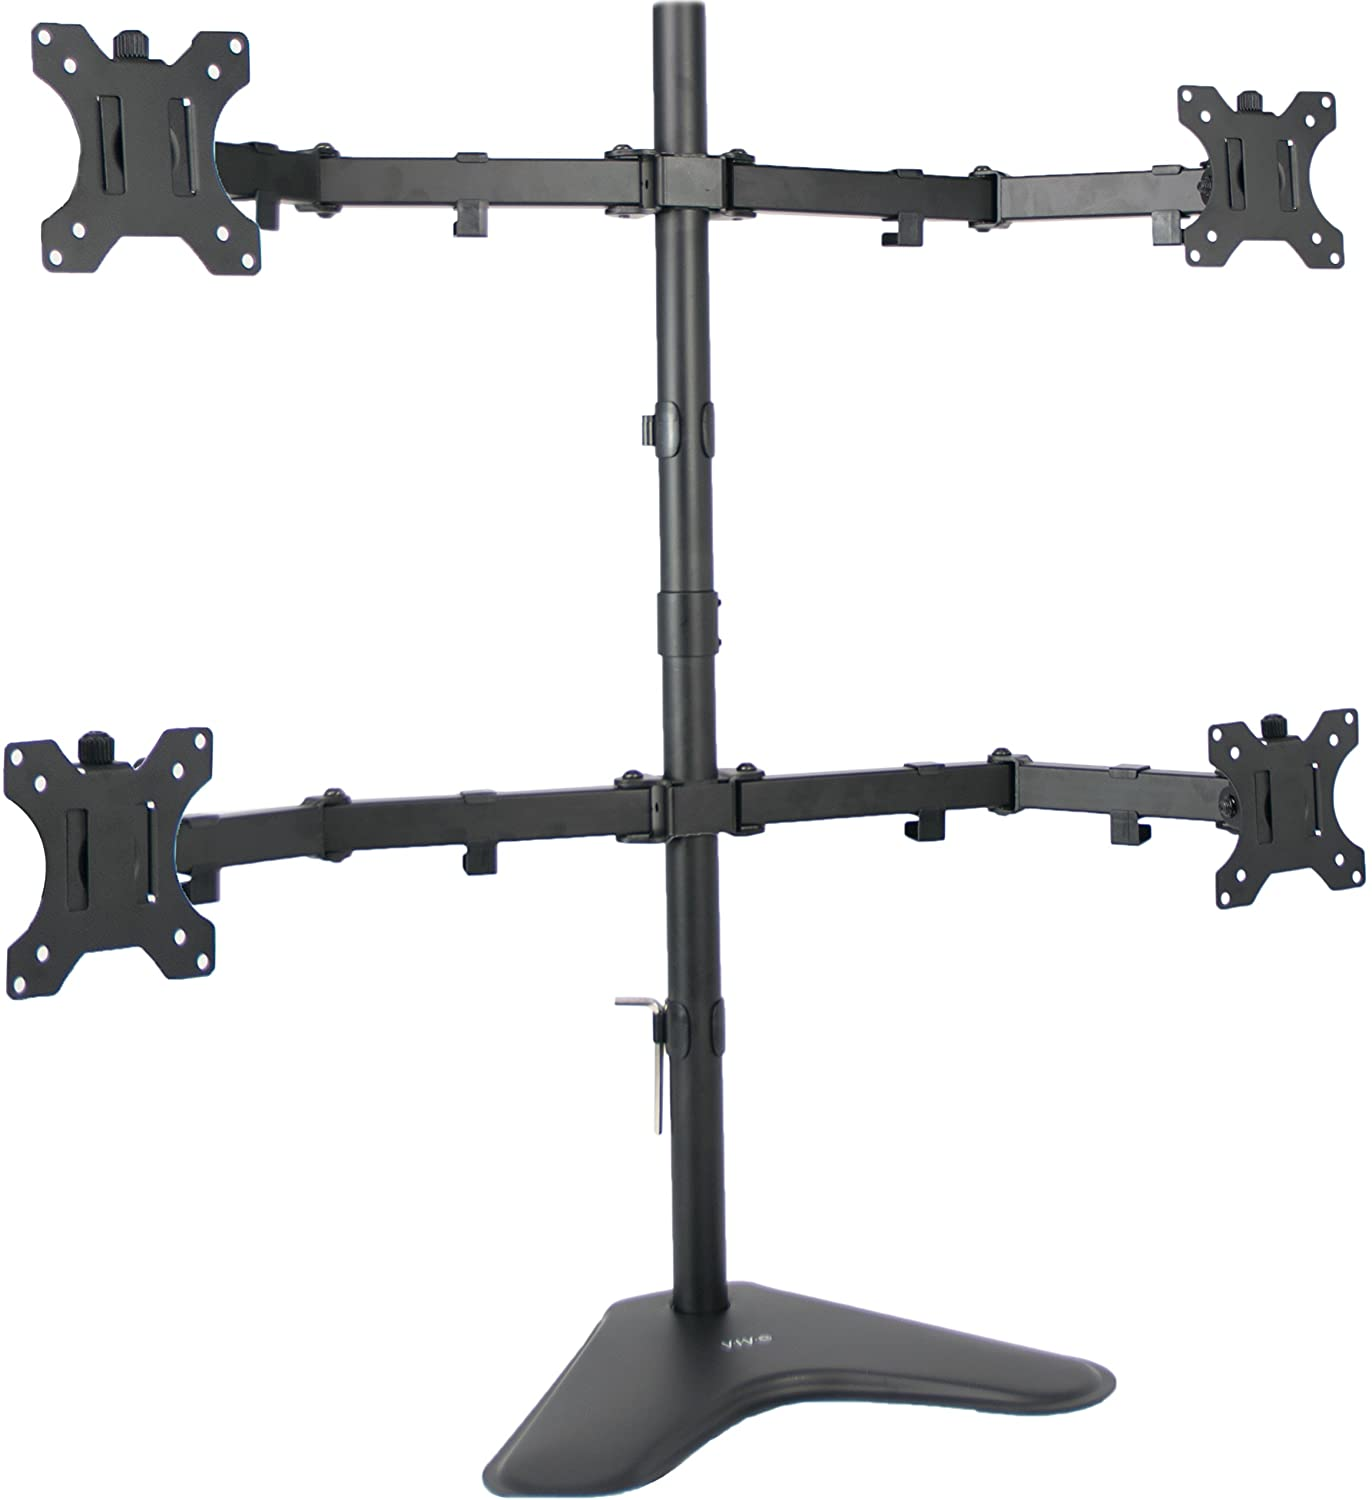 VIVO Quad LCD Computer Monitor Mount Free Standing Heavy Duty Desk Stand